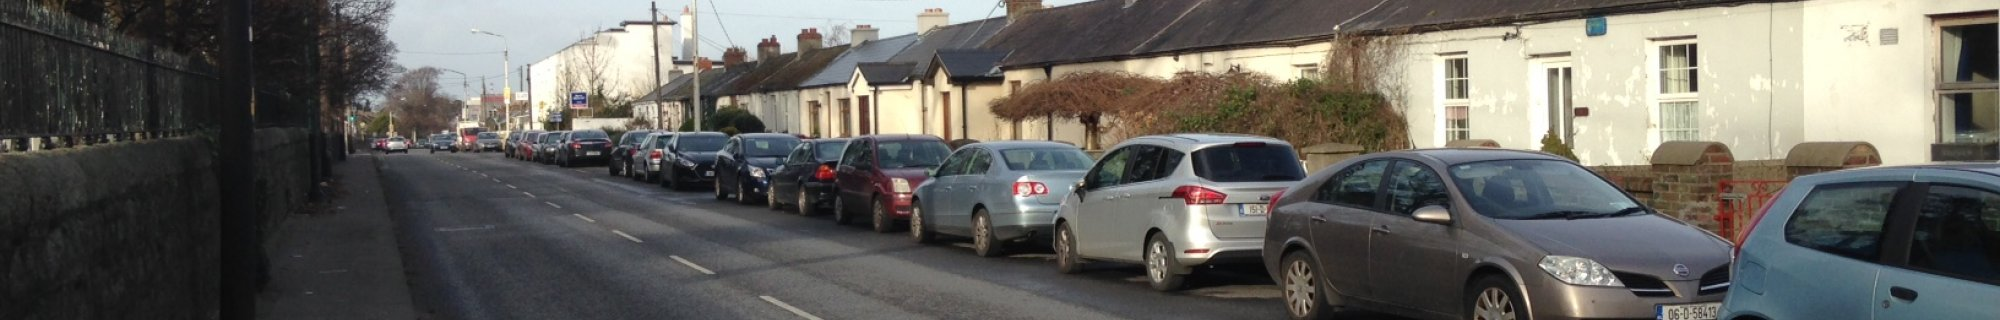 Residential Pay and Display Scheme